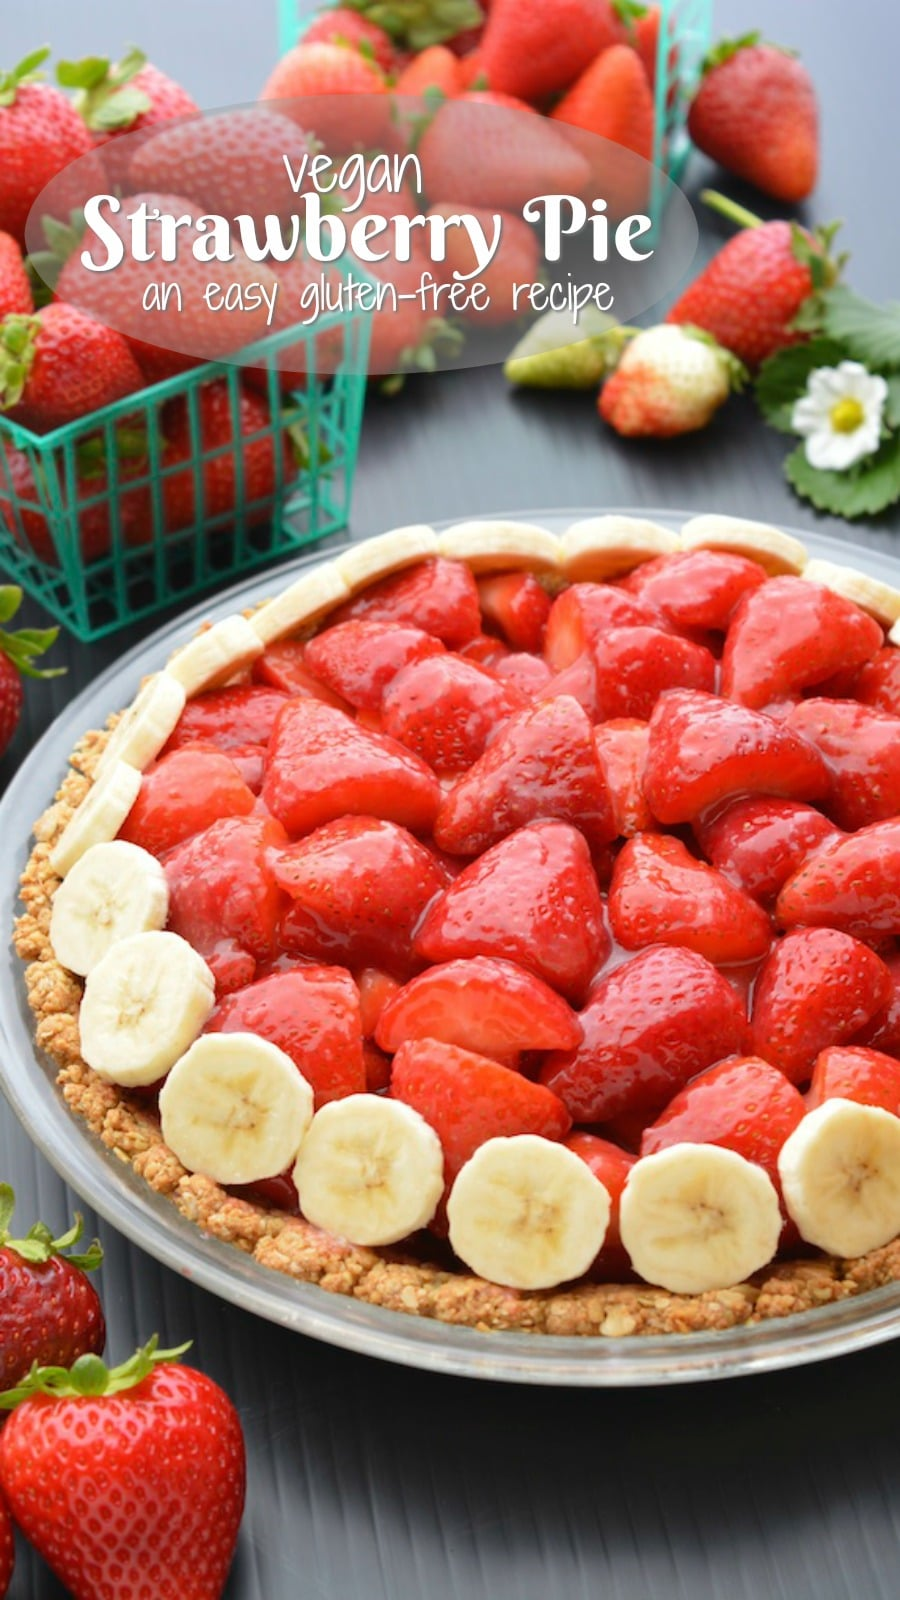 Vegan strawberry pie lined with banana slices.